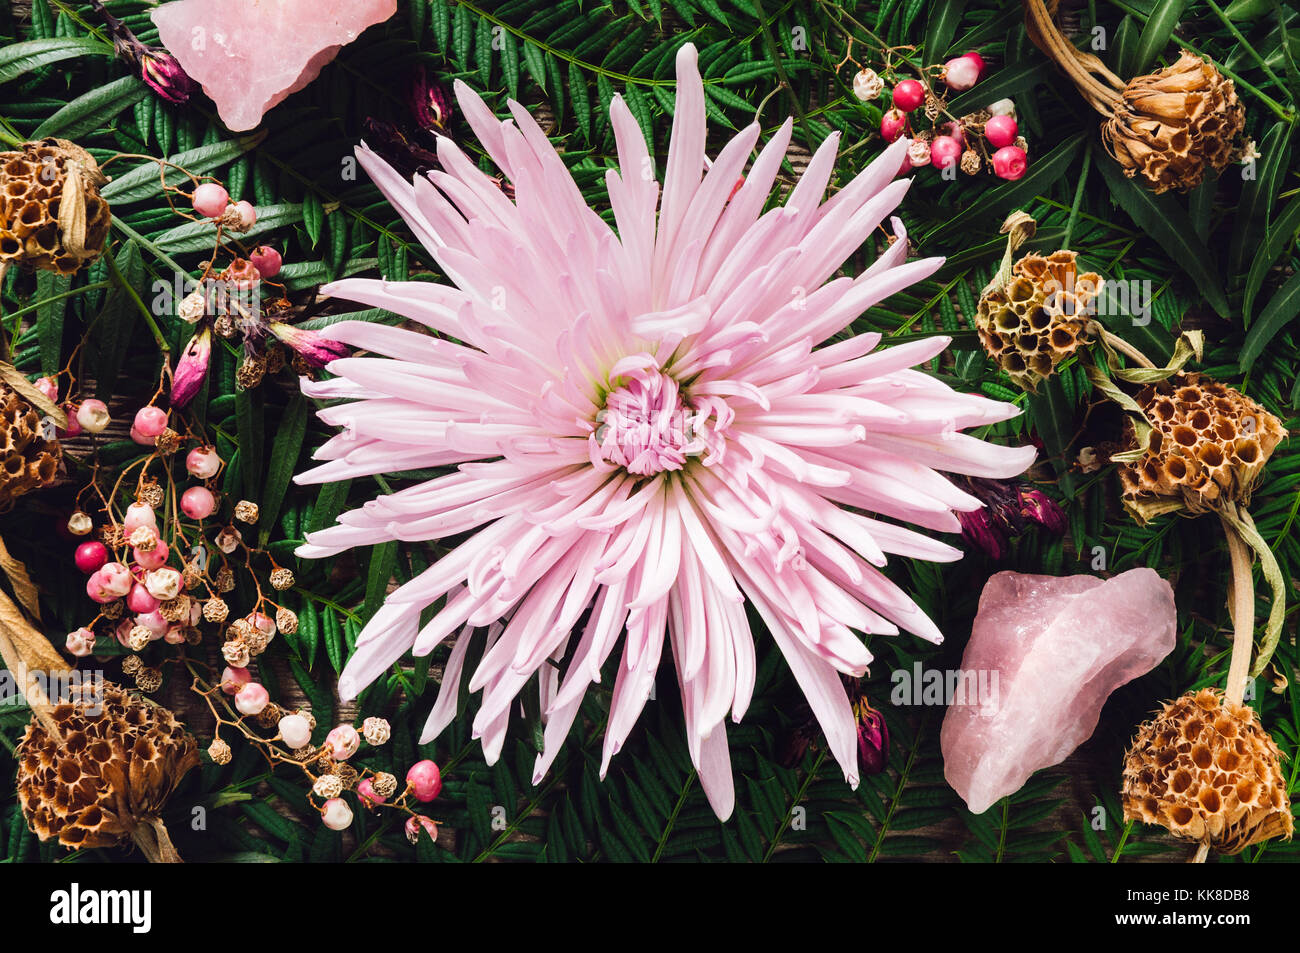 Fuji Spider Mum Flower with Rose Quartz Crystal and Schinus molle Fruits. Stock Photo